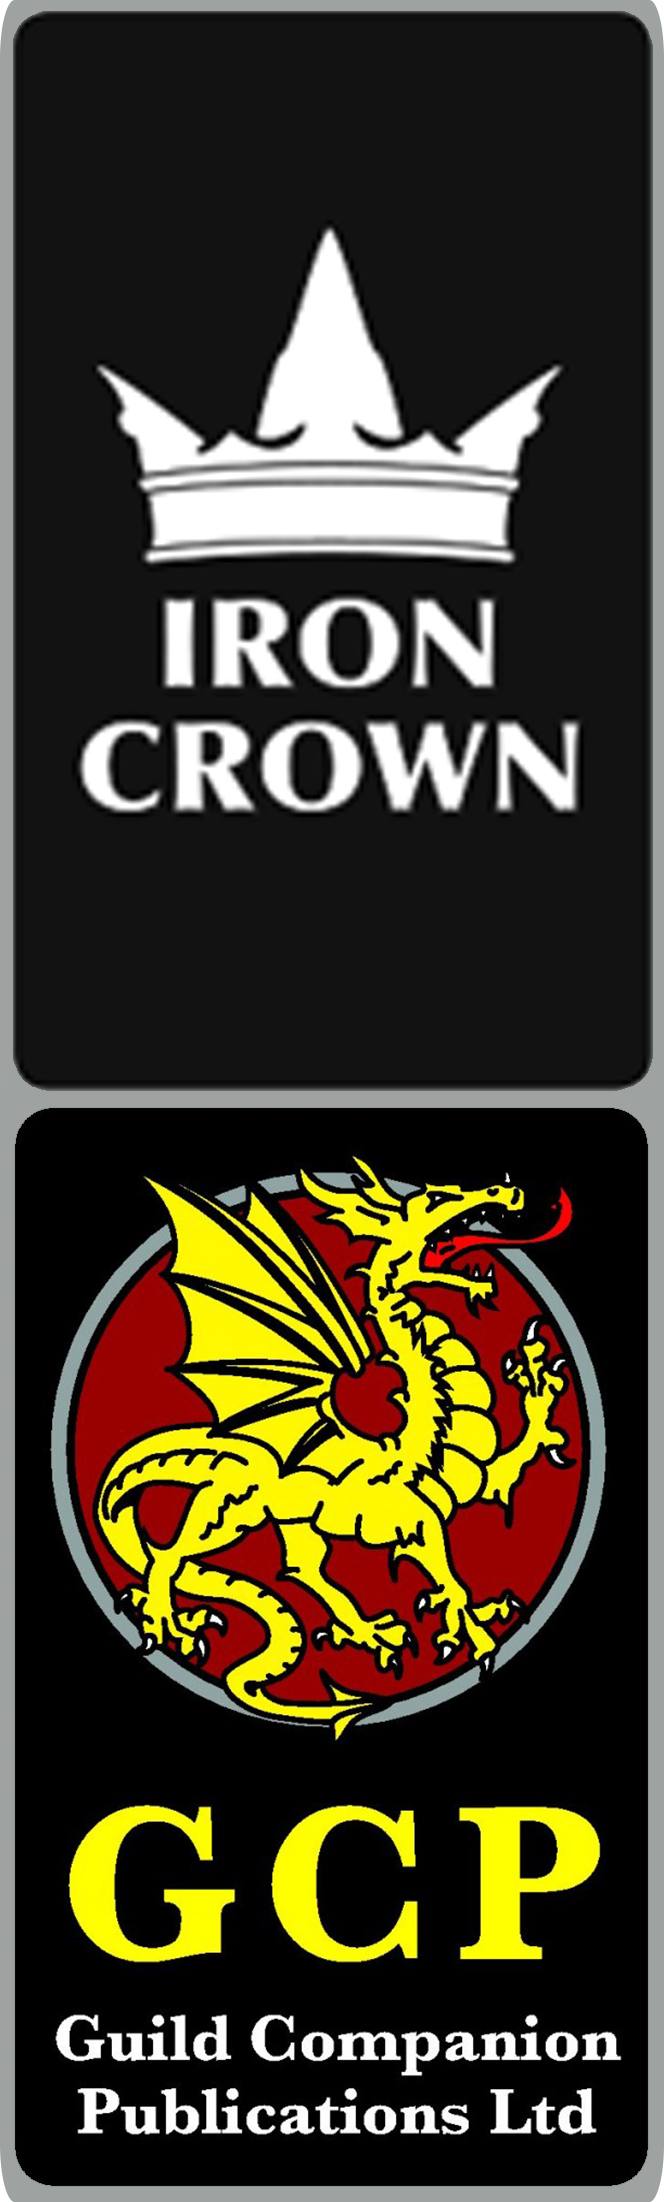 Guild Companion Publications and Iron Crown Enterprises logos